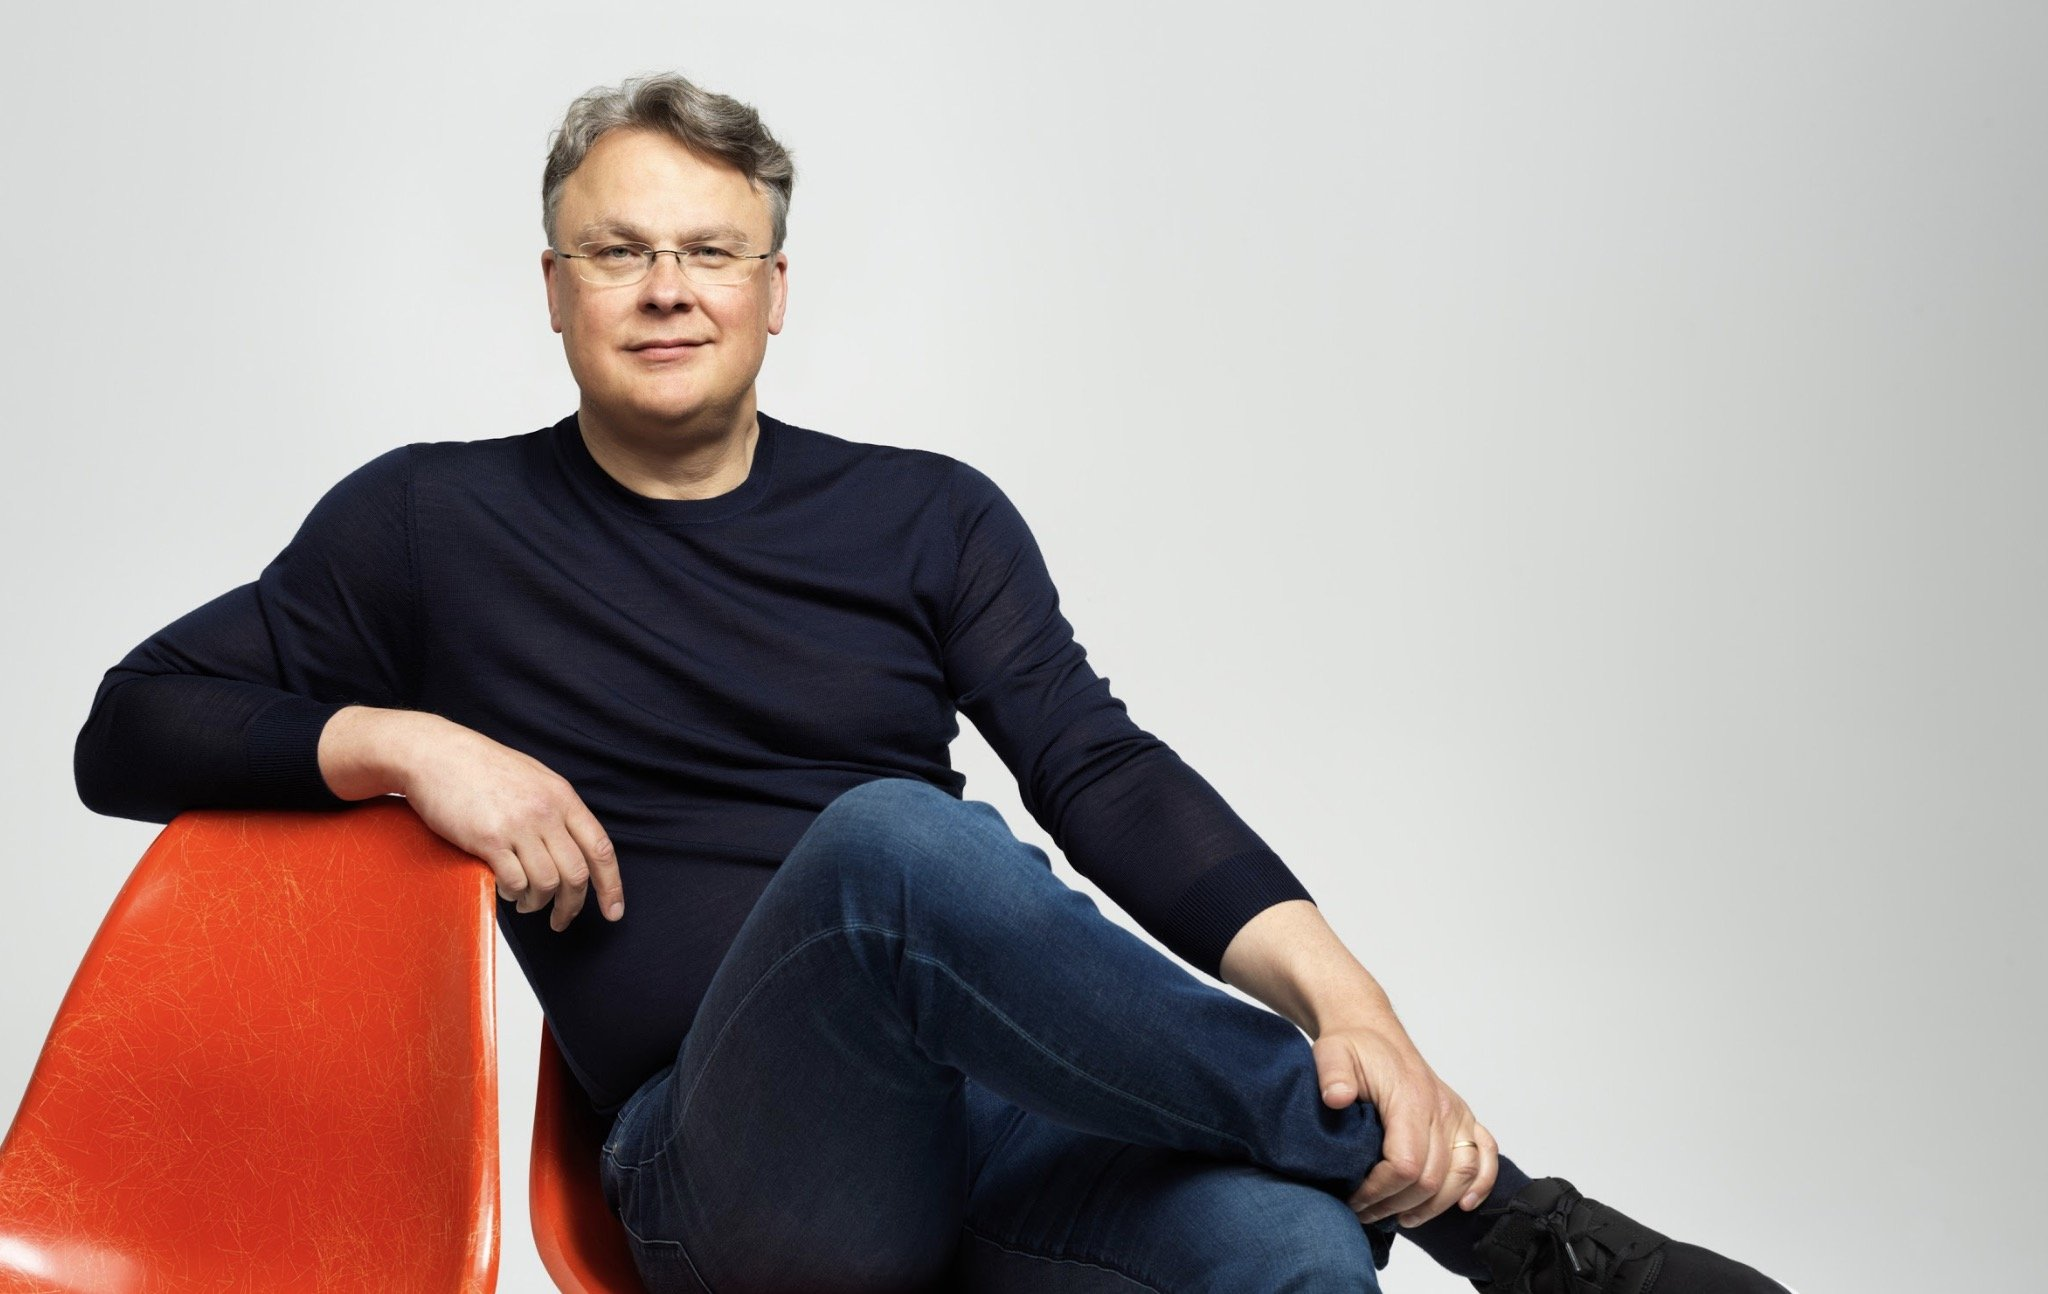 Kobalt CEO Willard Ahdritz